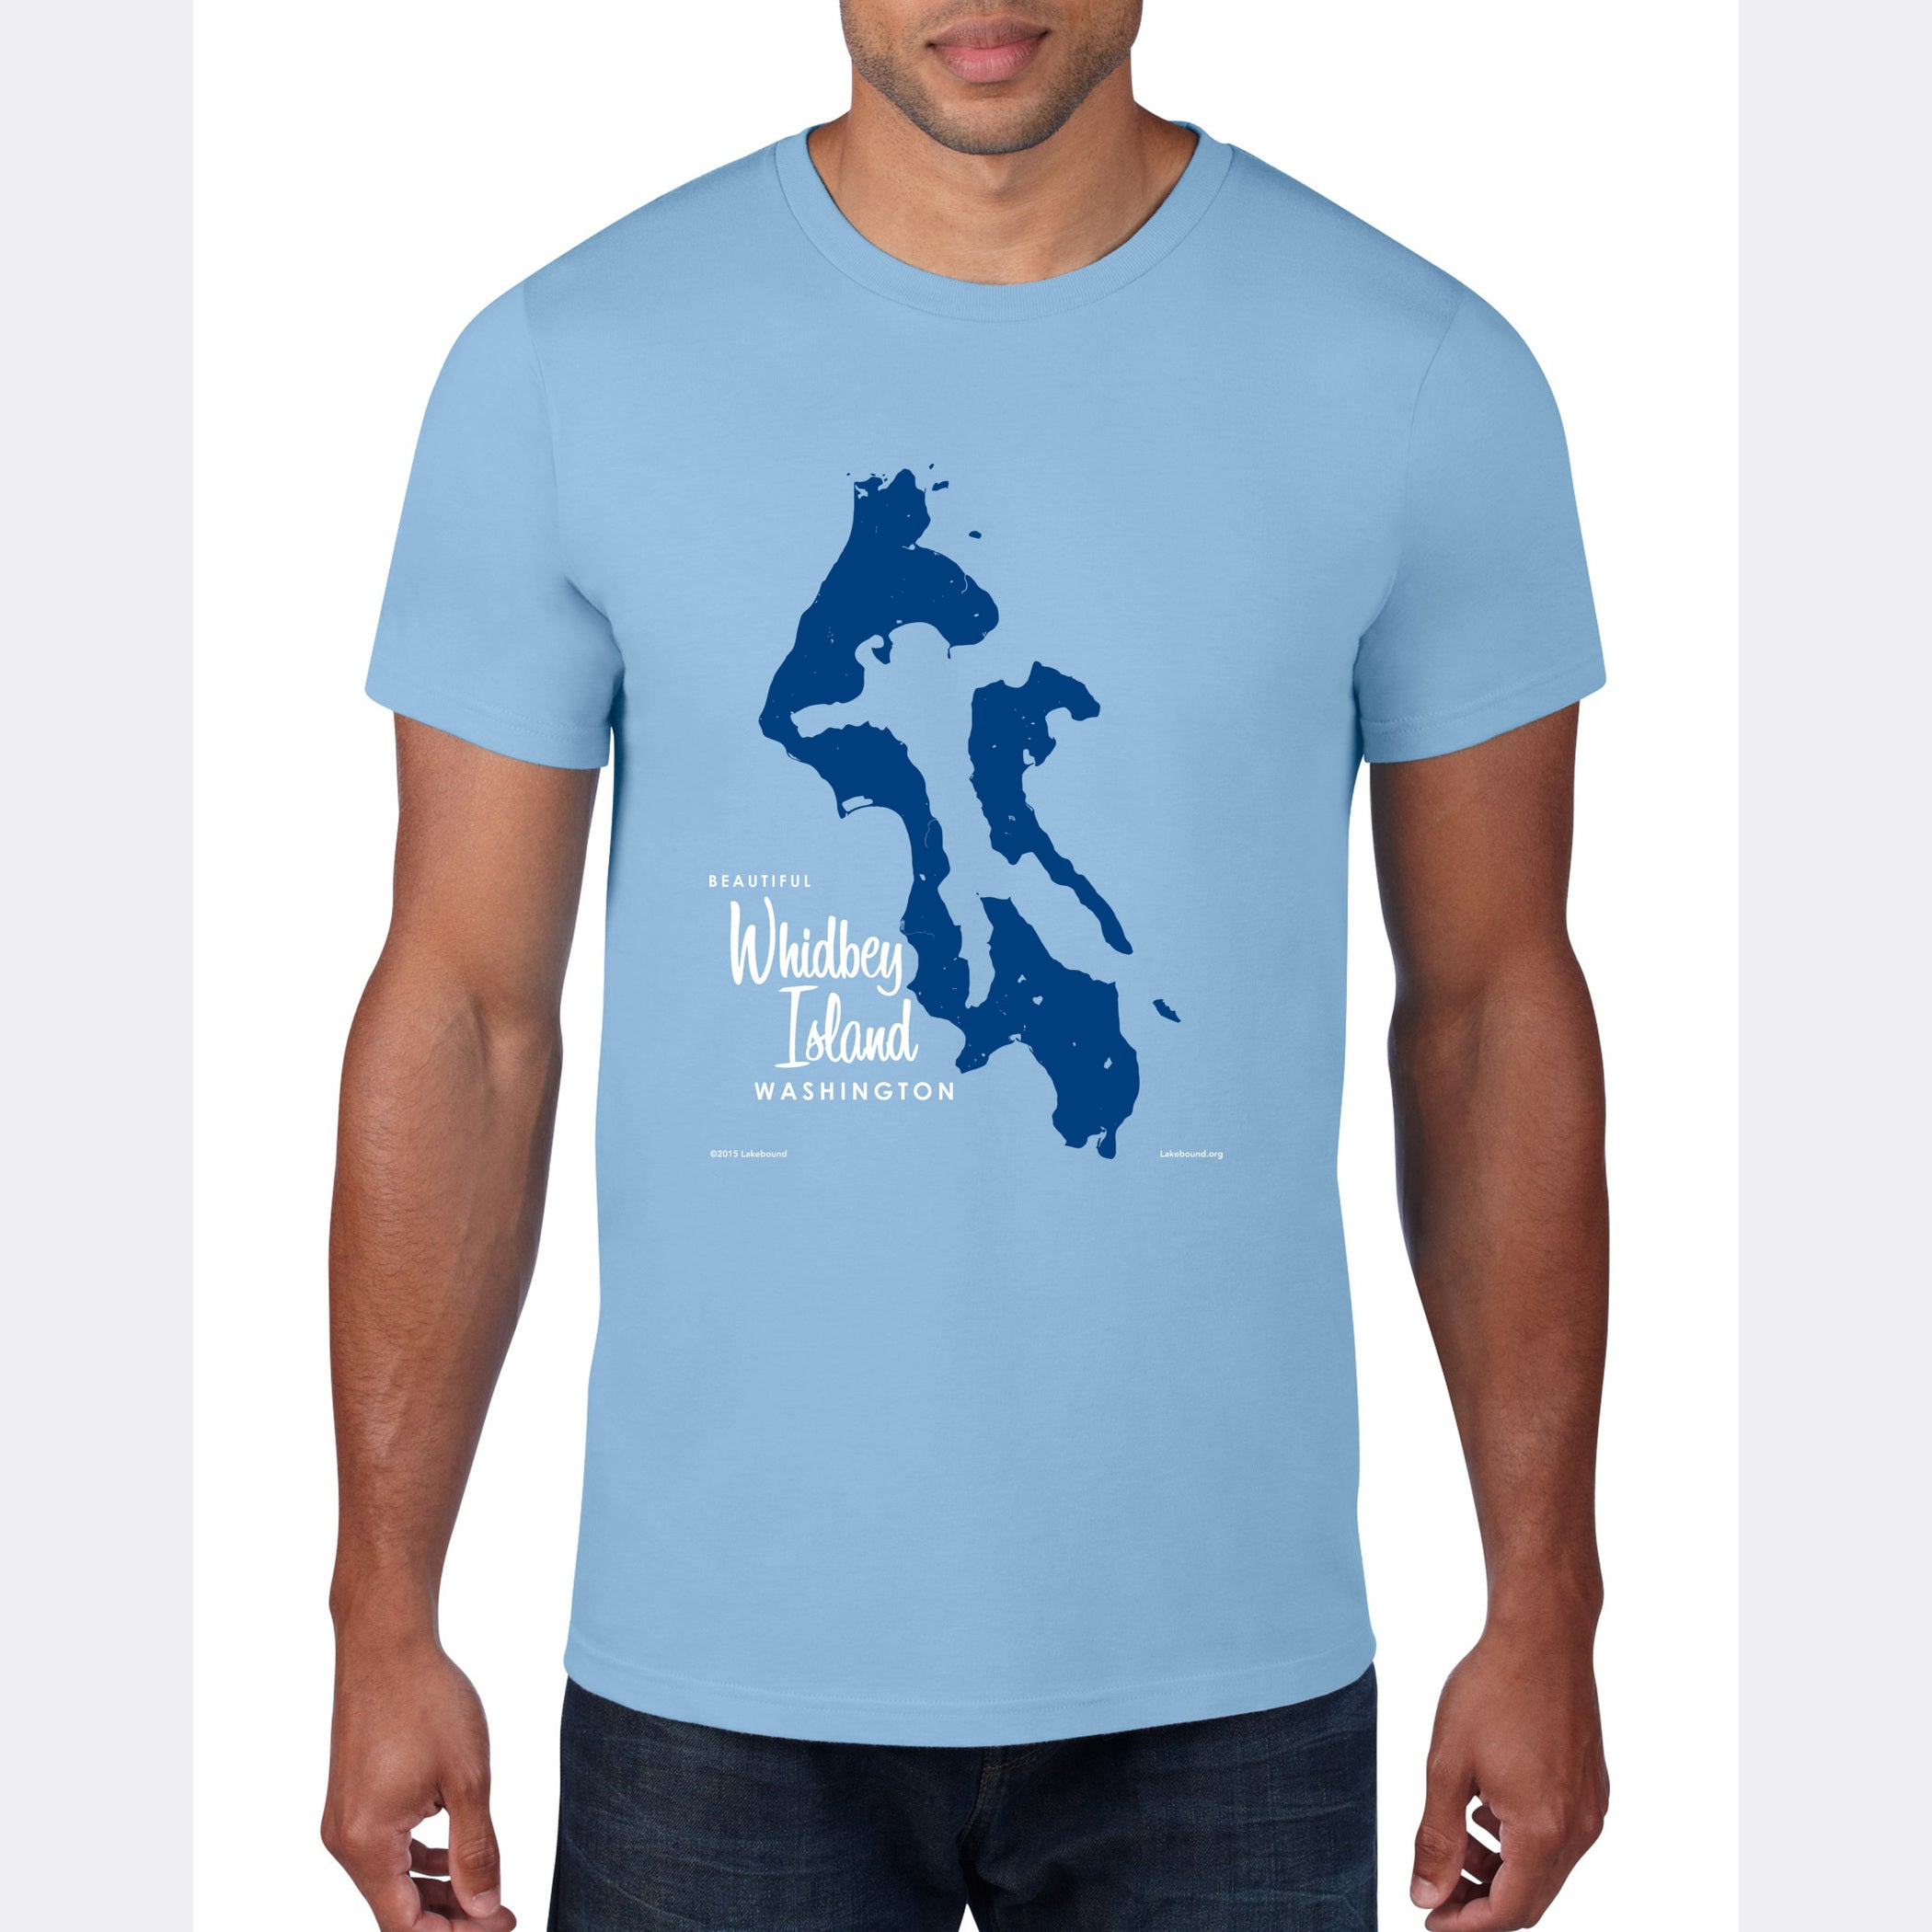 Whidbey Island Washington, T-Shirt